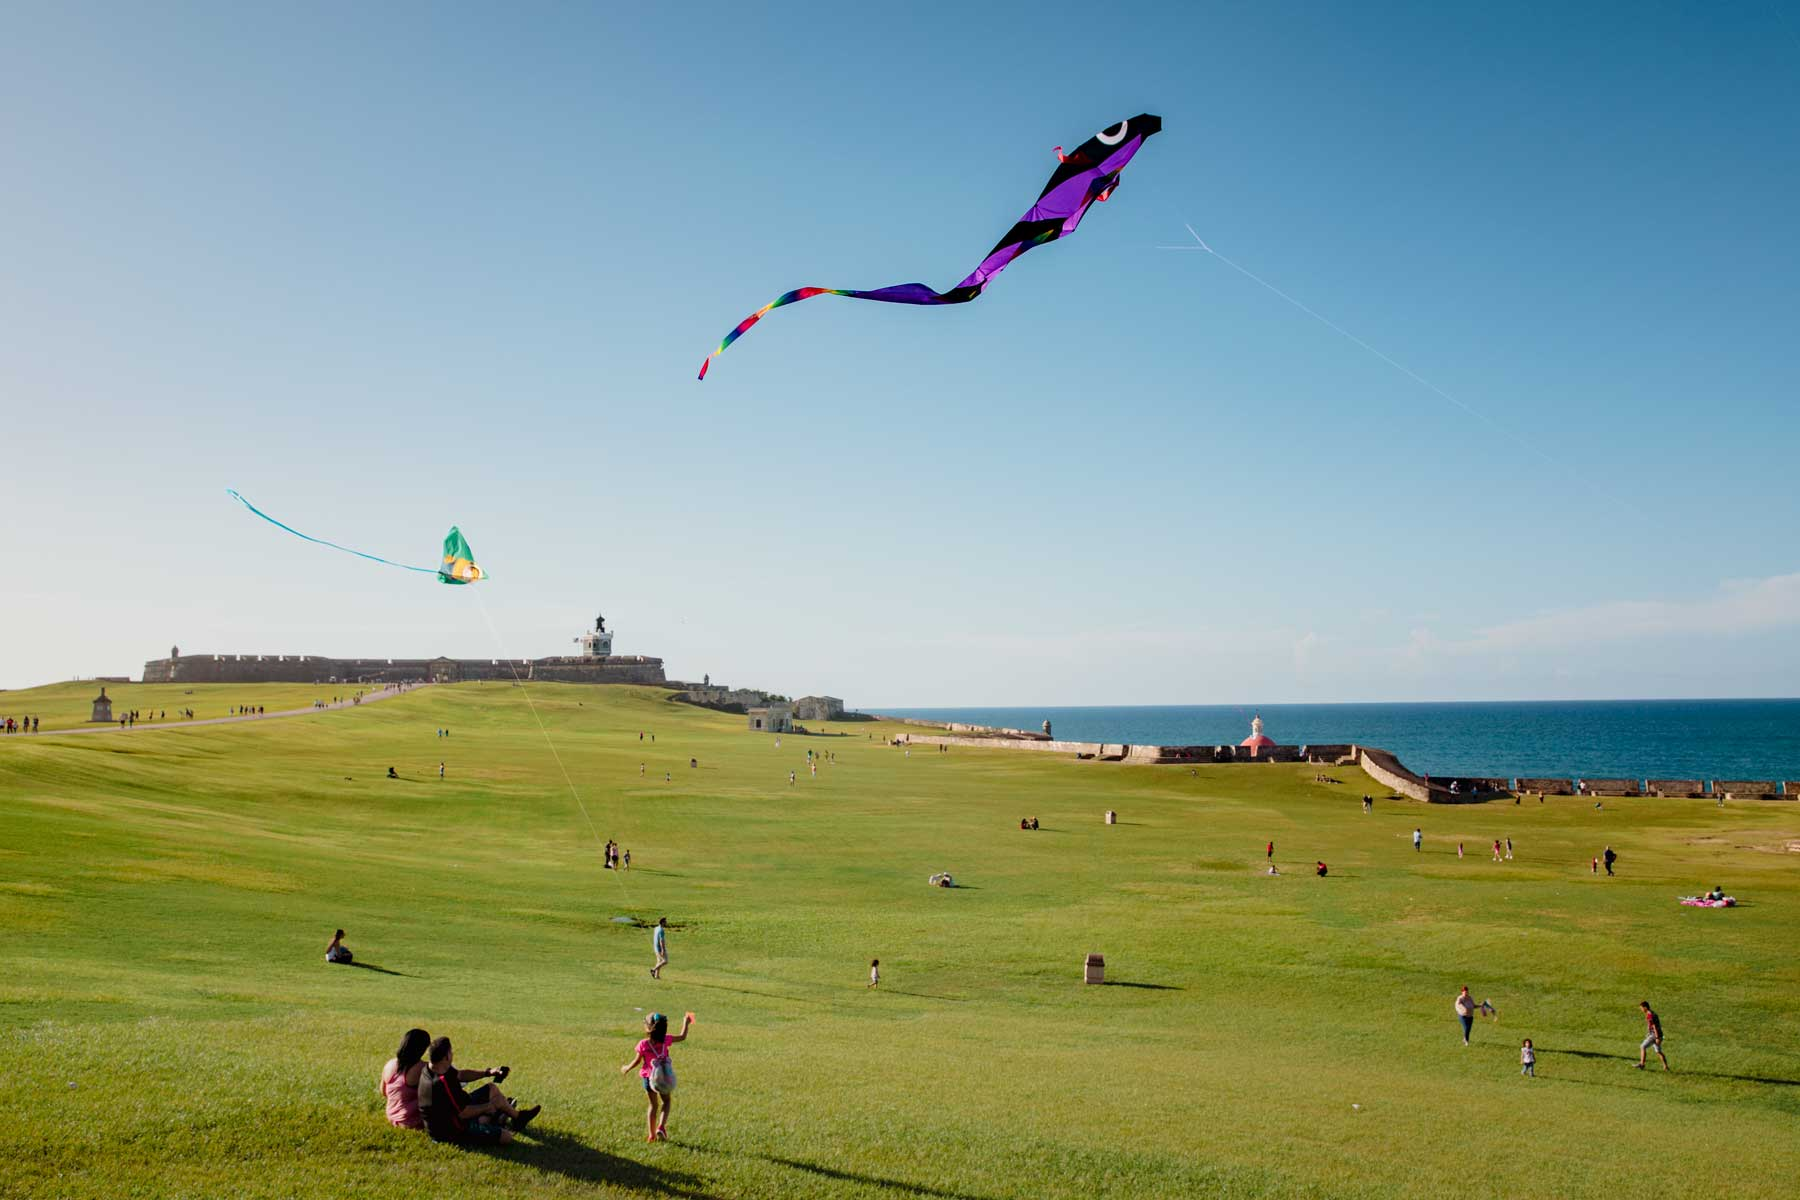 Children fly kites at El Morro, San Juan, on a sunny day